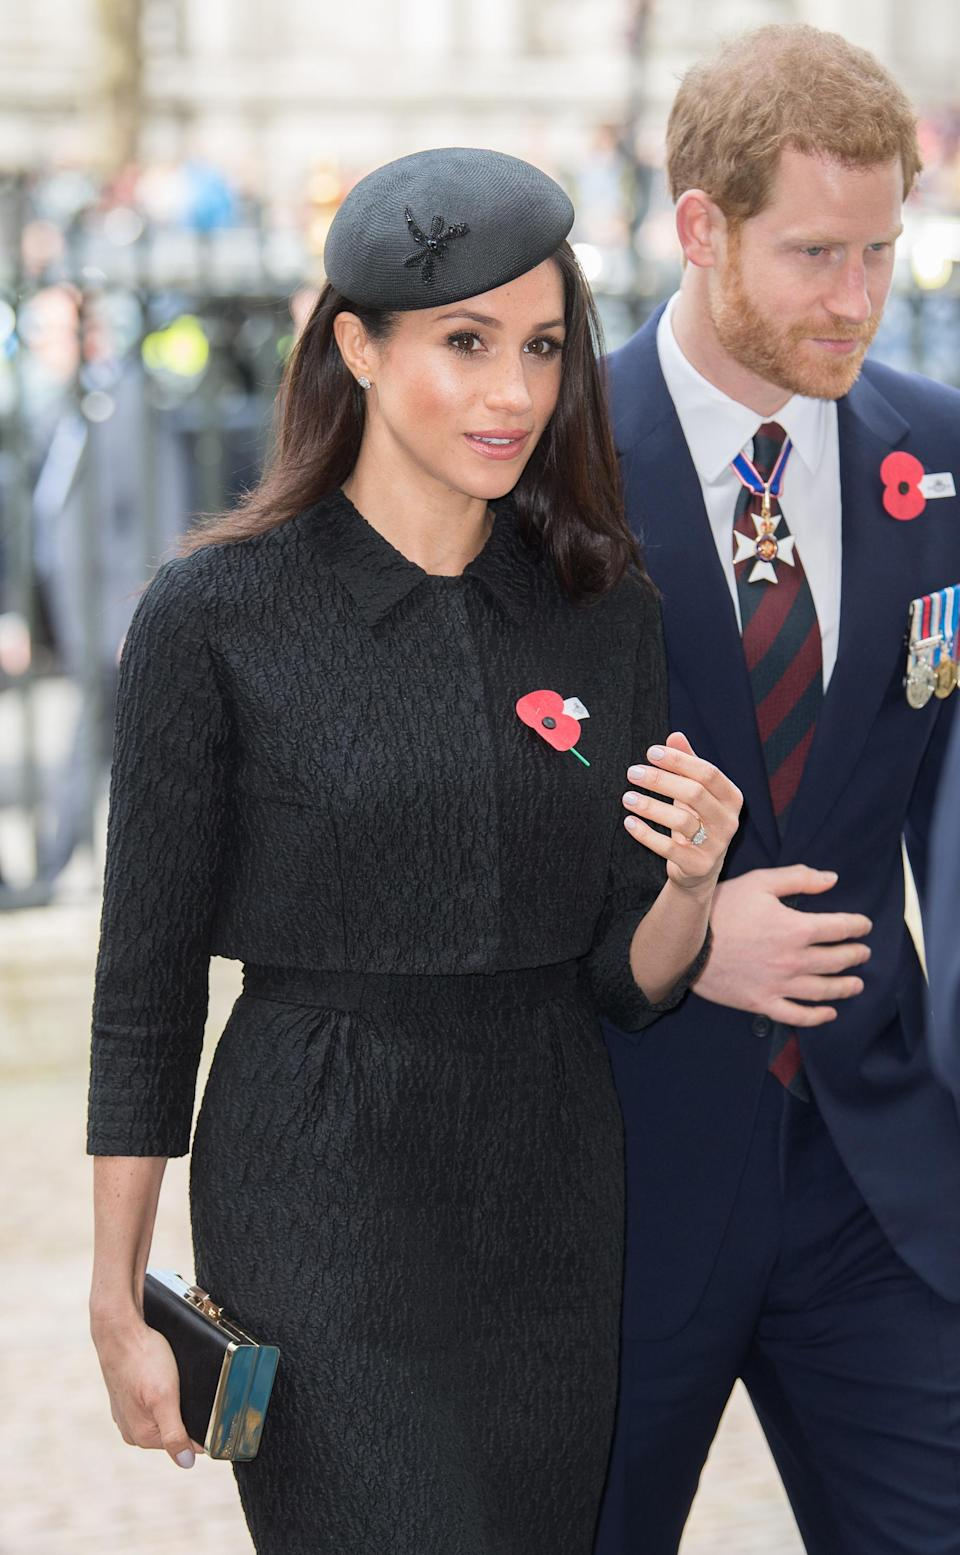 <p>Meghan wore a hat by famed milliner, Philip Treacy. Treacy is the go-to designer for both royals and celebrities. Kate Middleton, Sarah Jessica Parker and Lady Gaga are fans. </p>